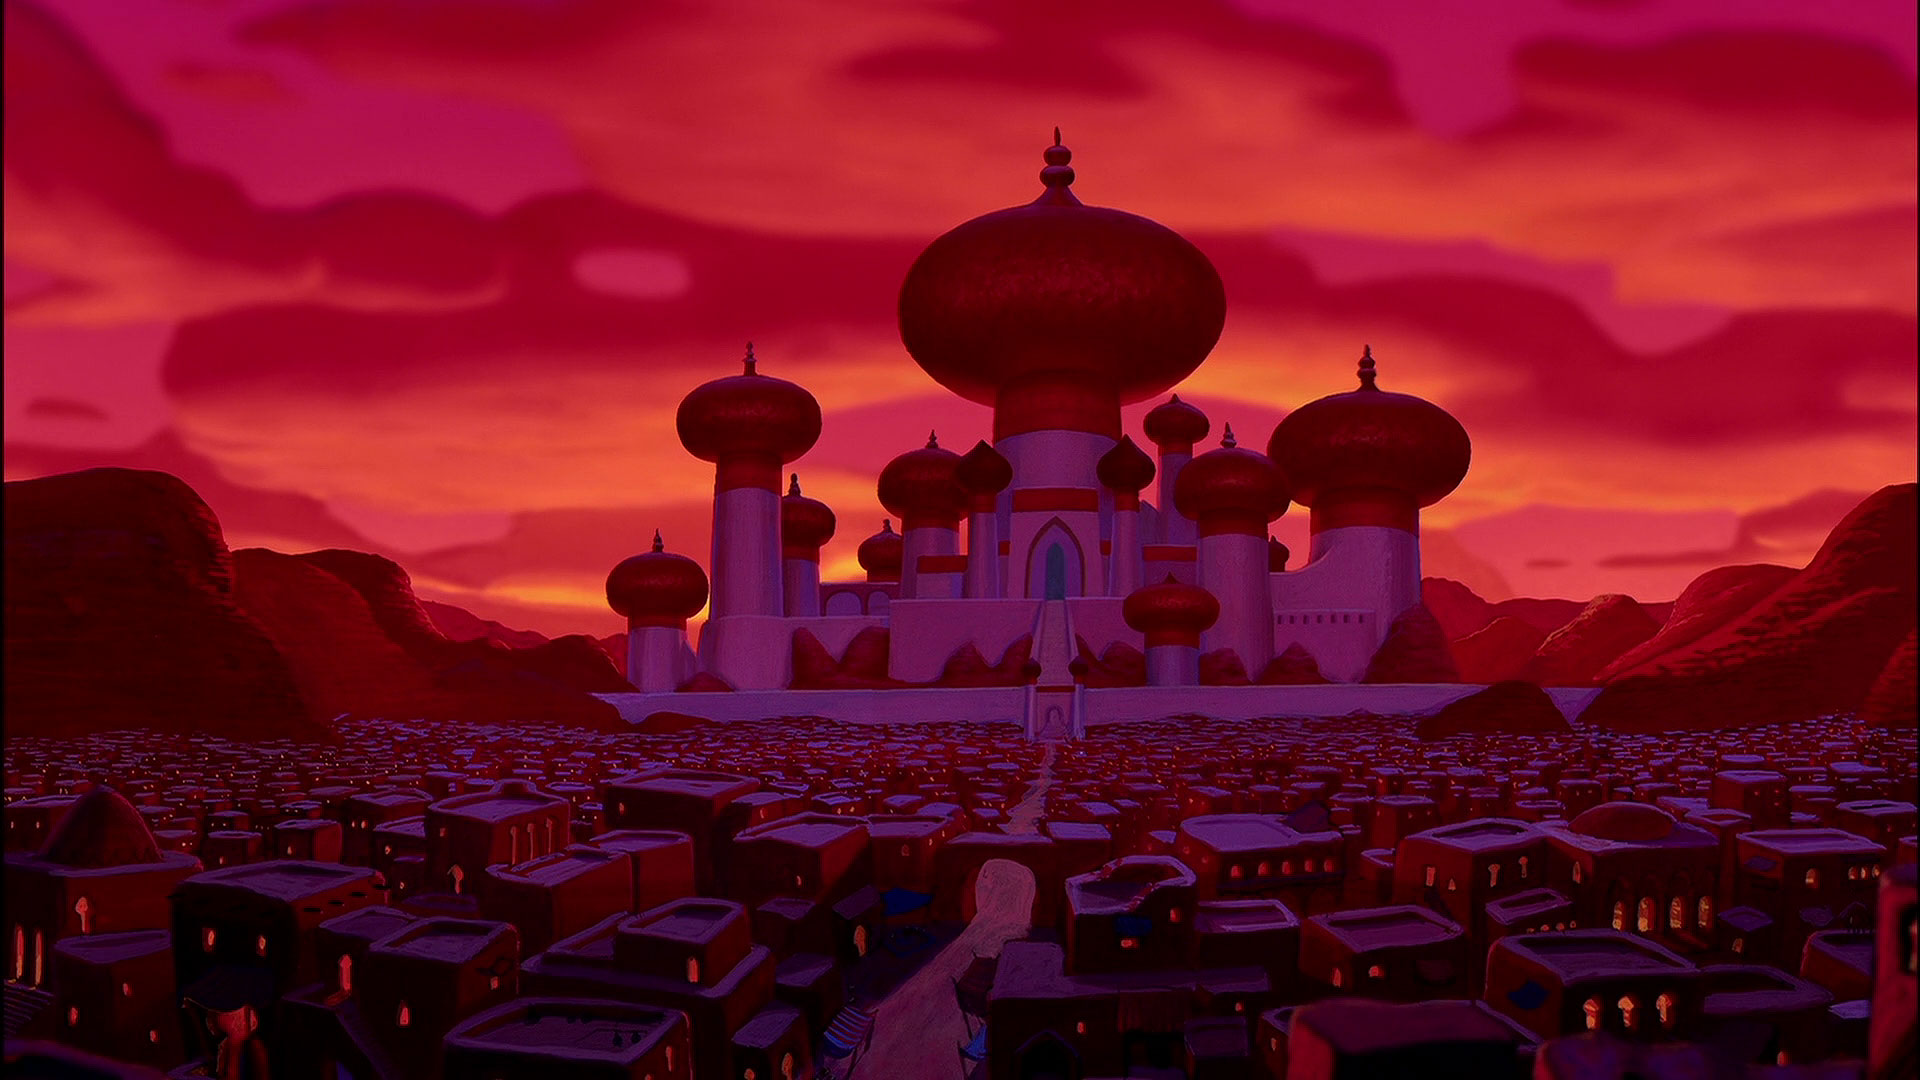 Disney Company Aladdin HD Wallpaper